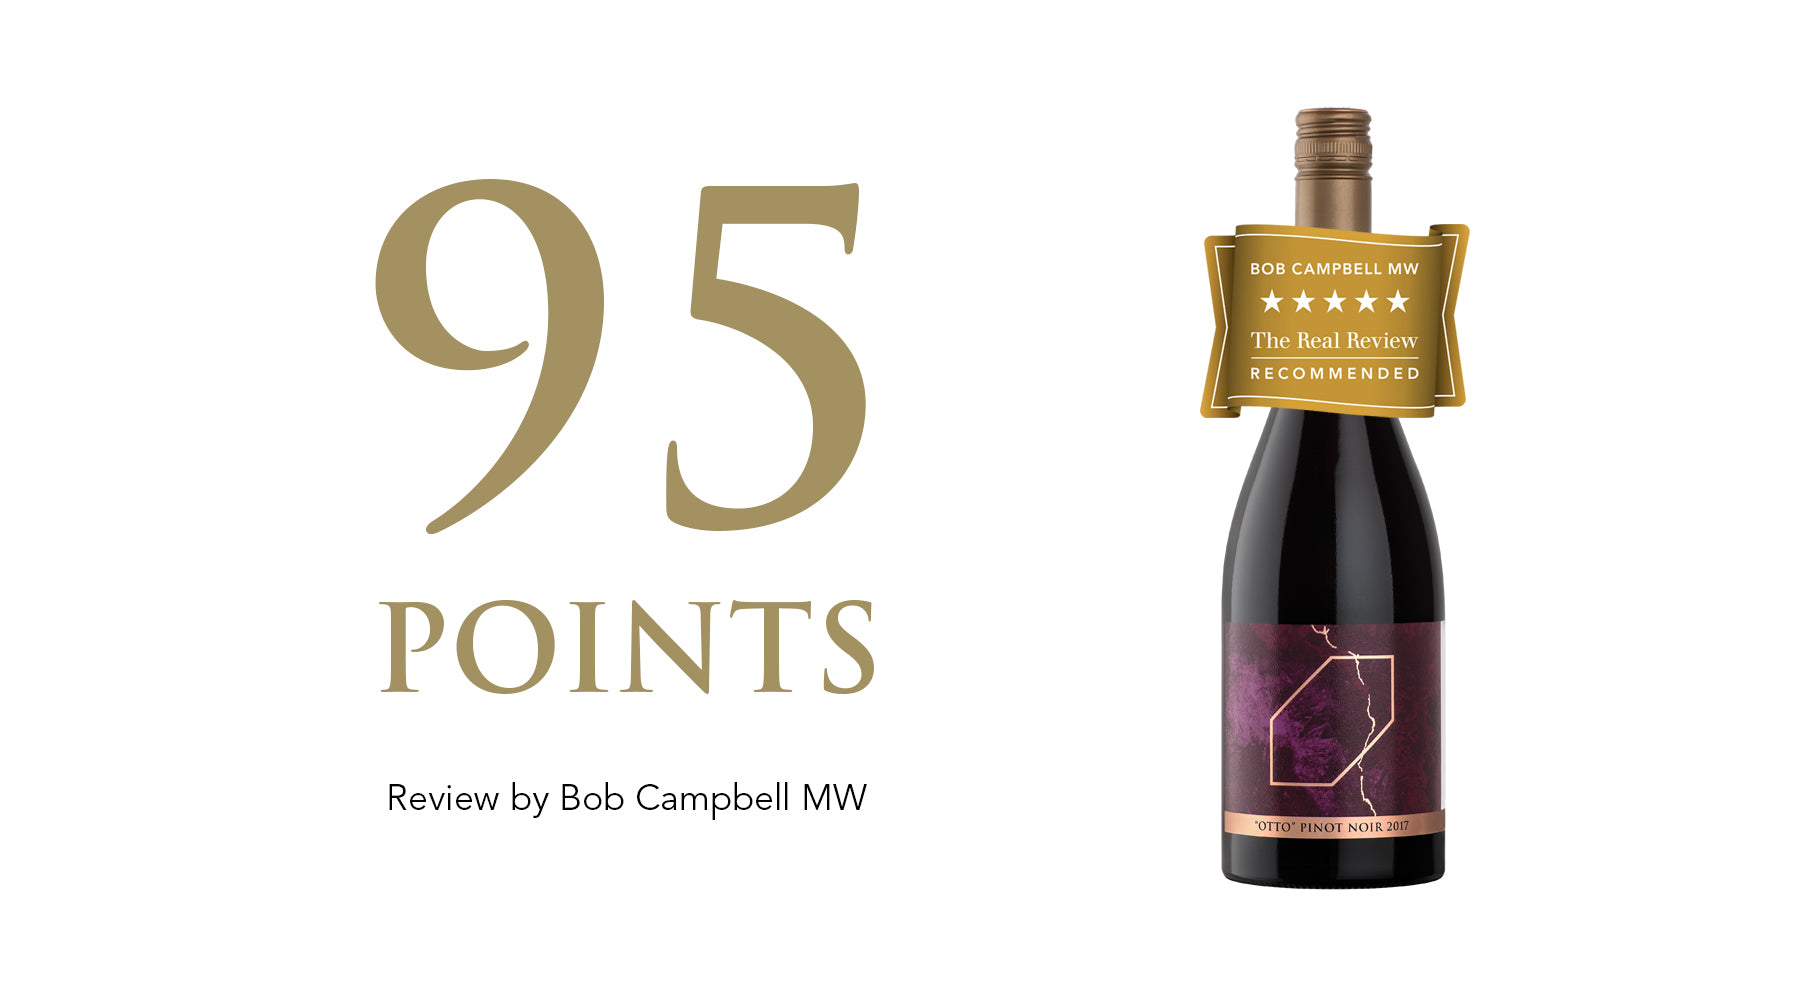 Otto Pinot Noir 2017: Awarded 95 Points and 5 Stars